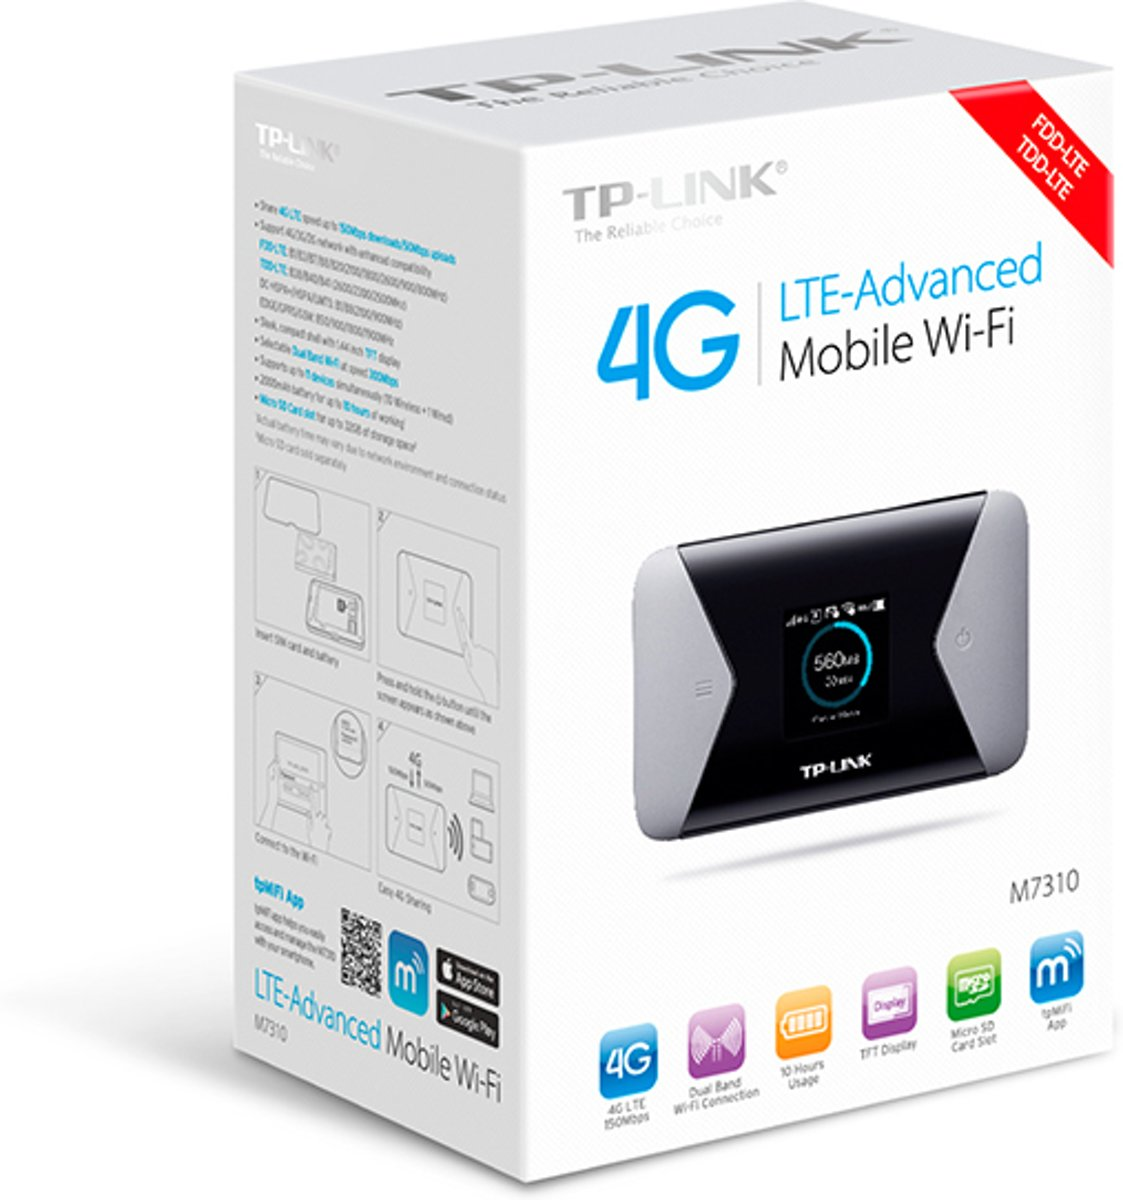 Tp Link M7310 Mifi Router M7350 4g Lte Advanced Mobile Wifi